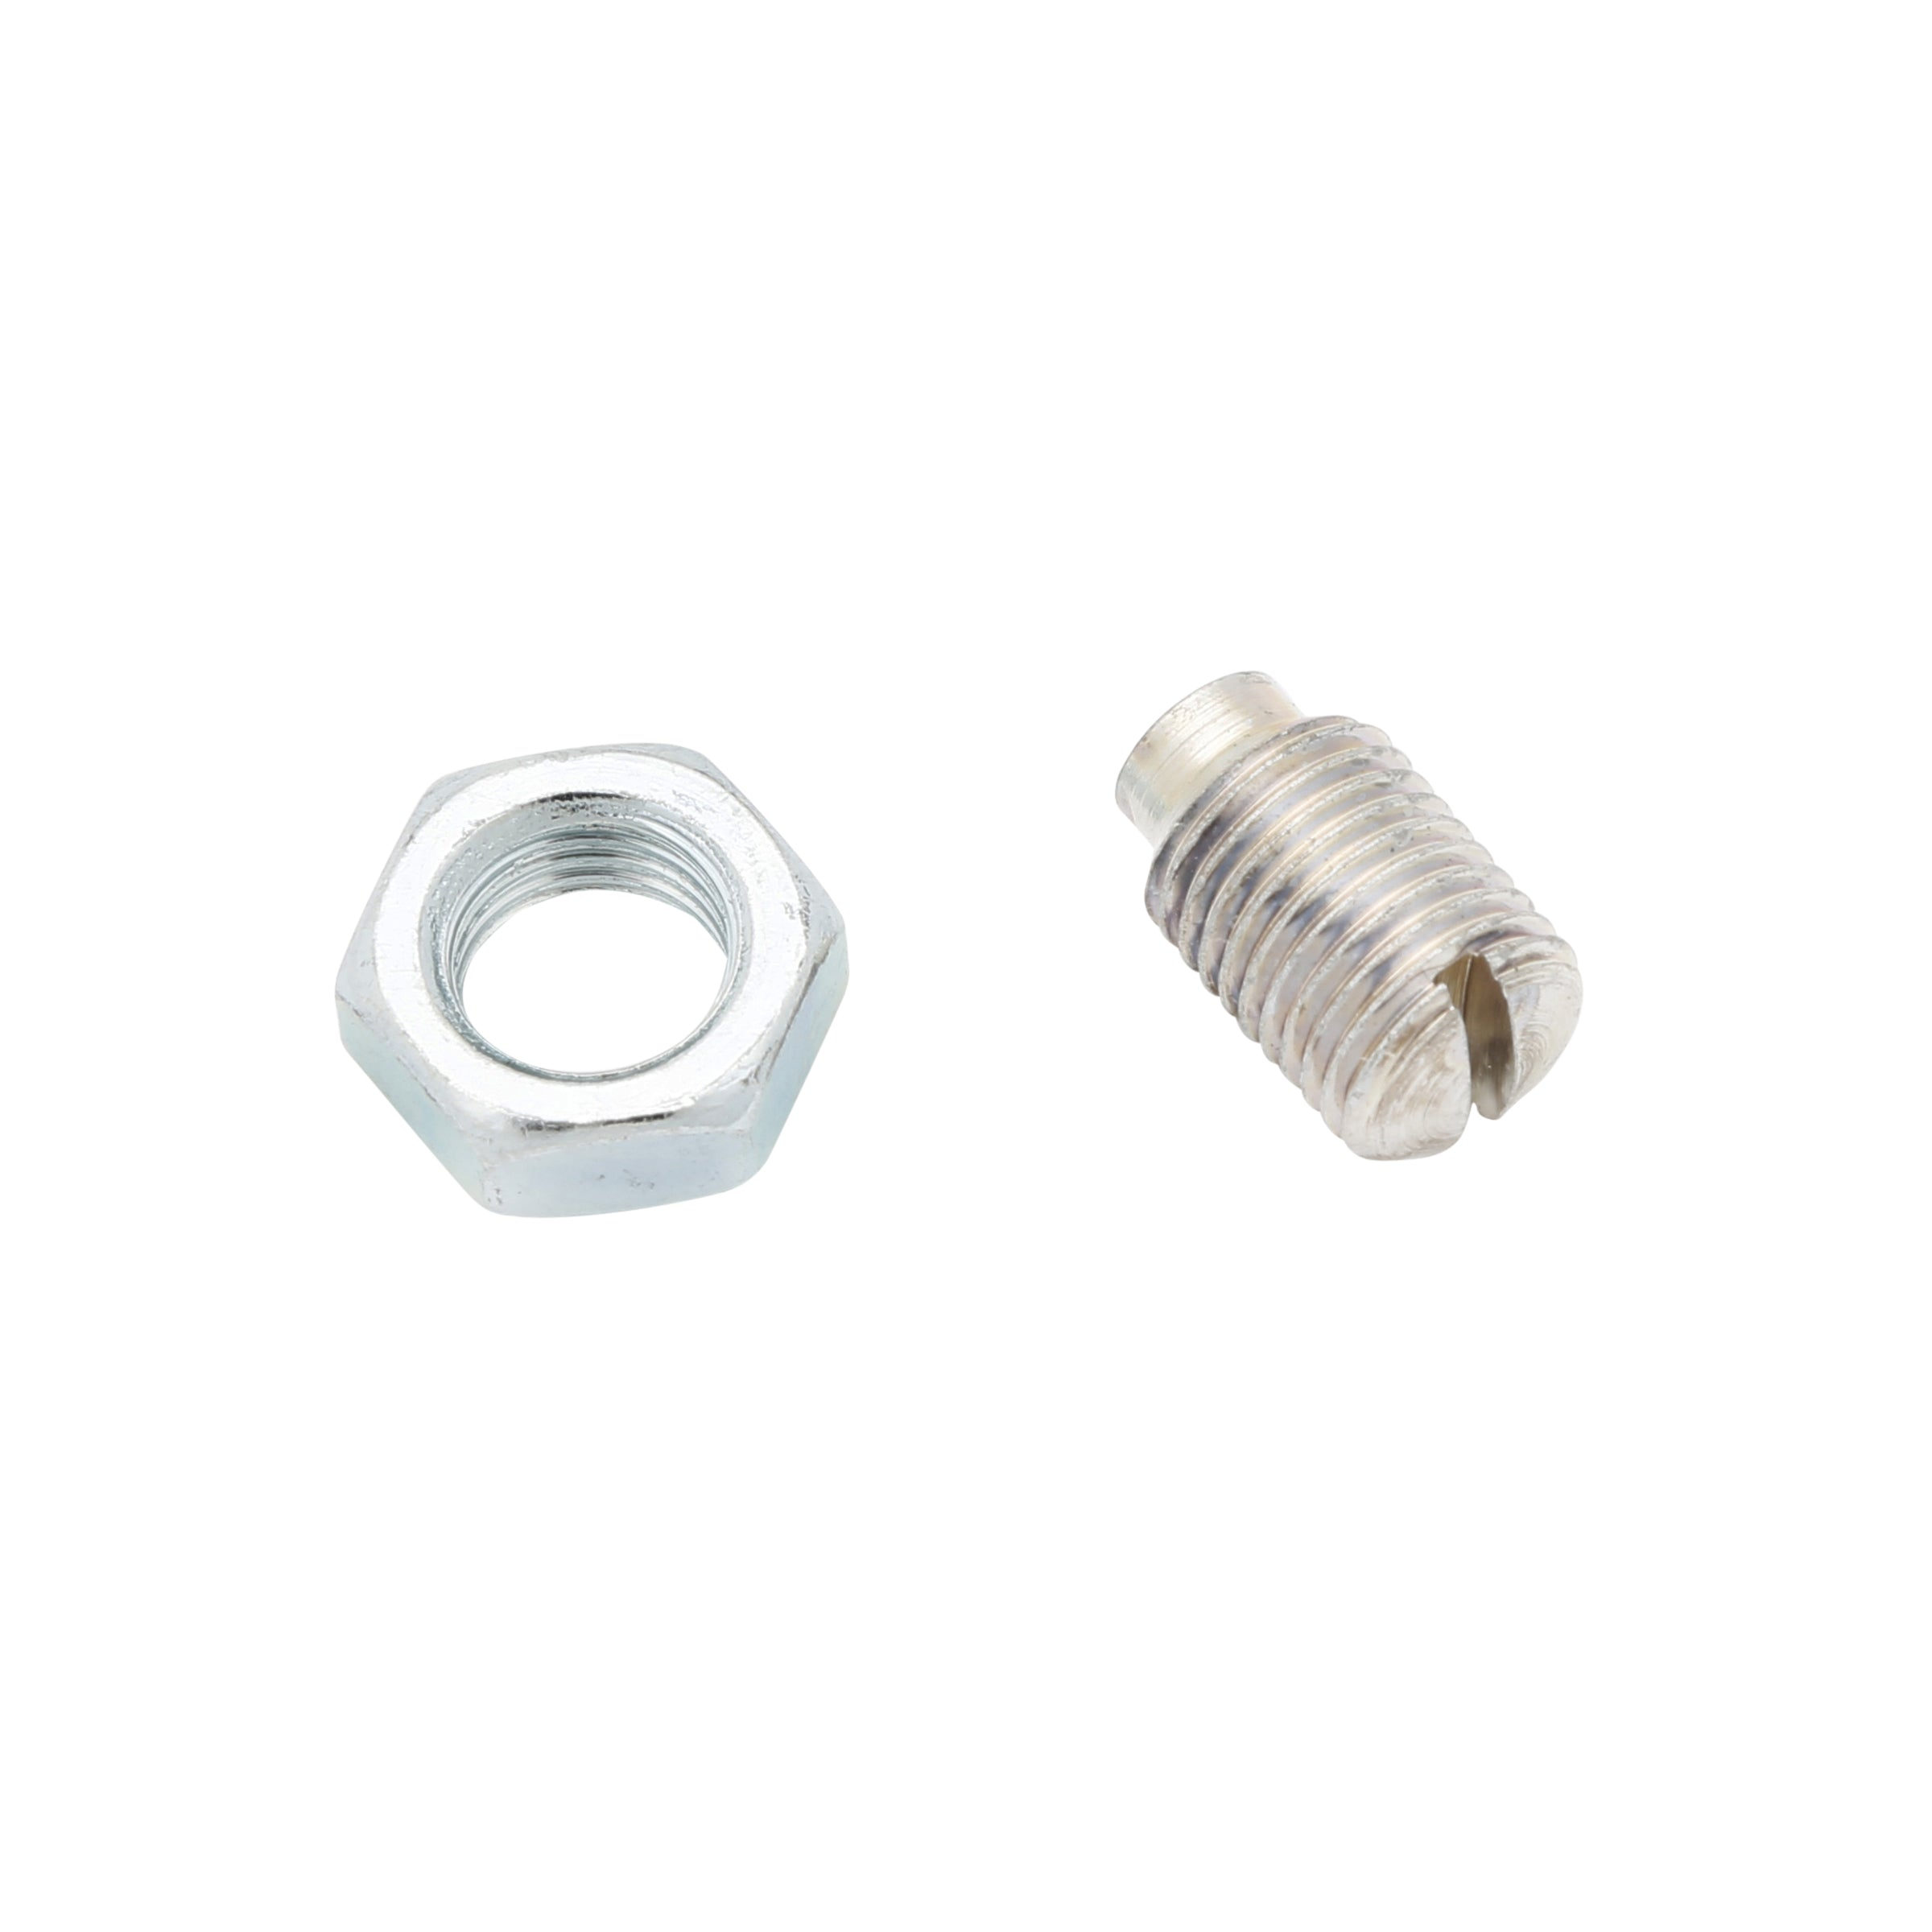 Distributor Set Screw & Lock Nut